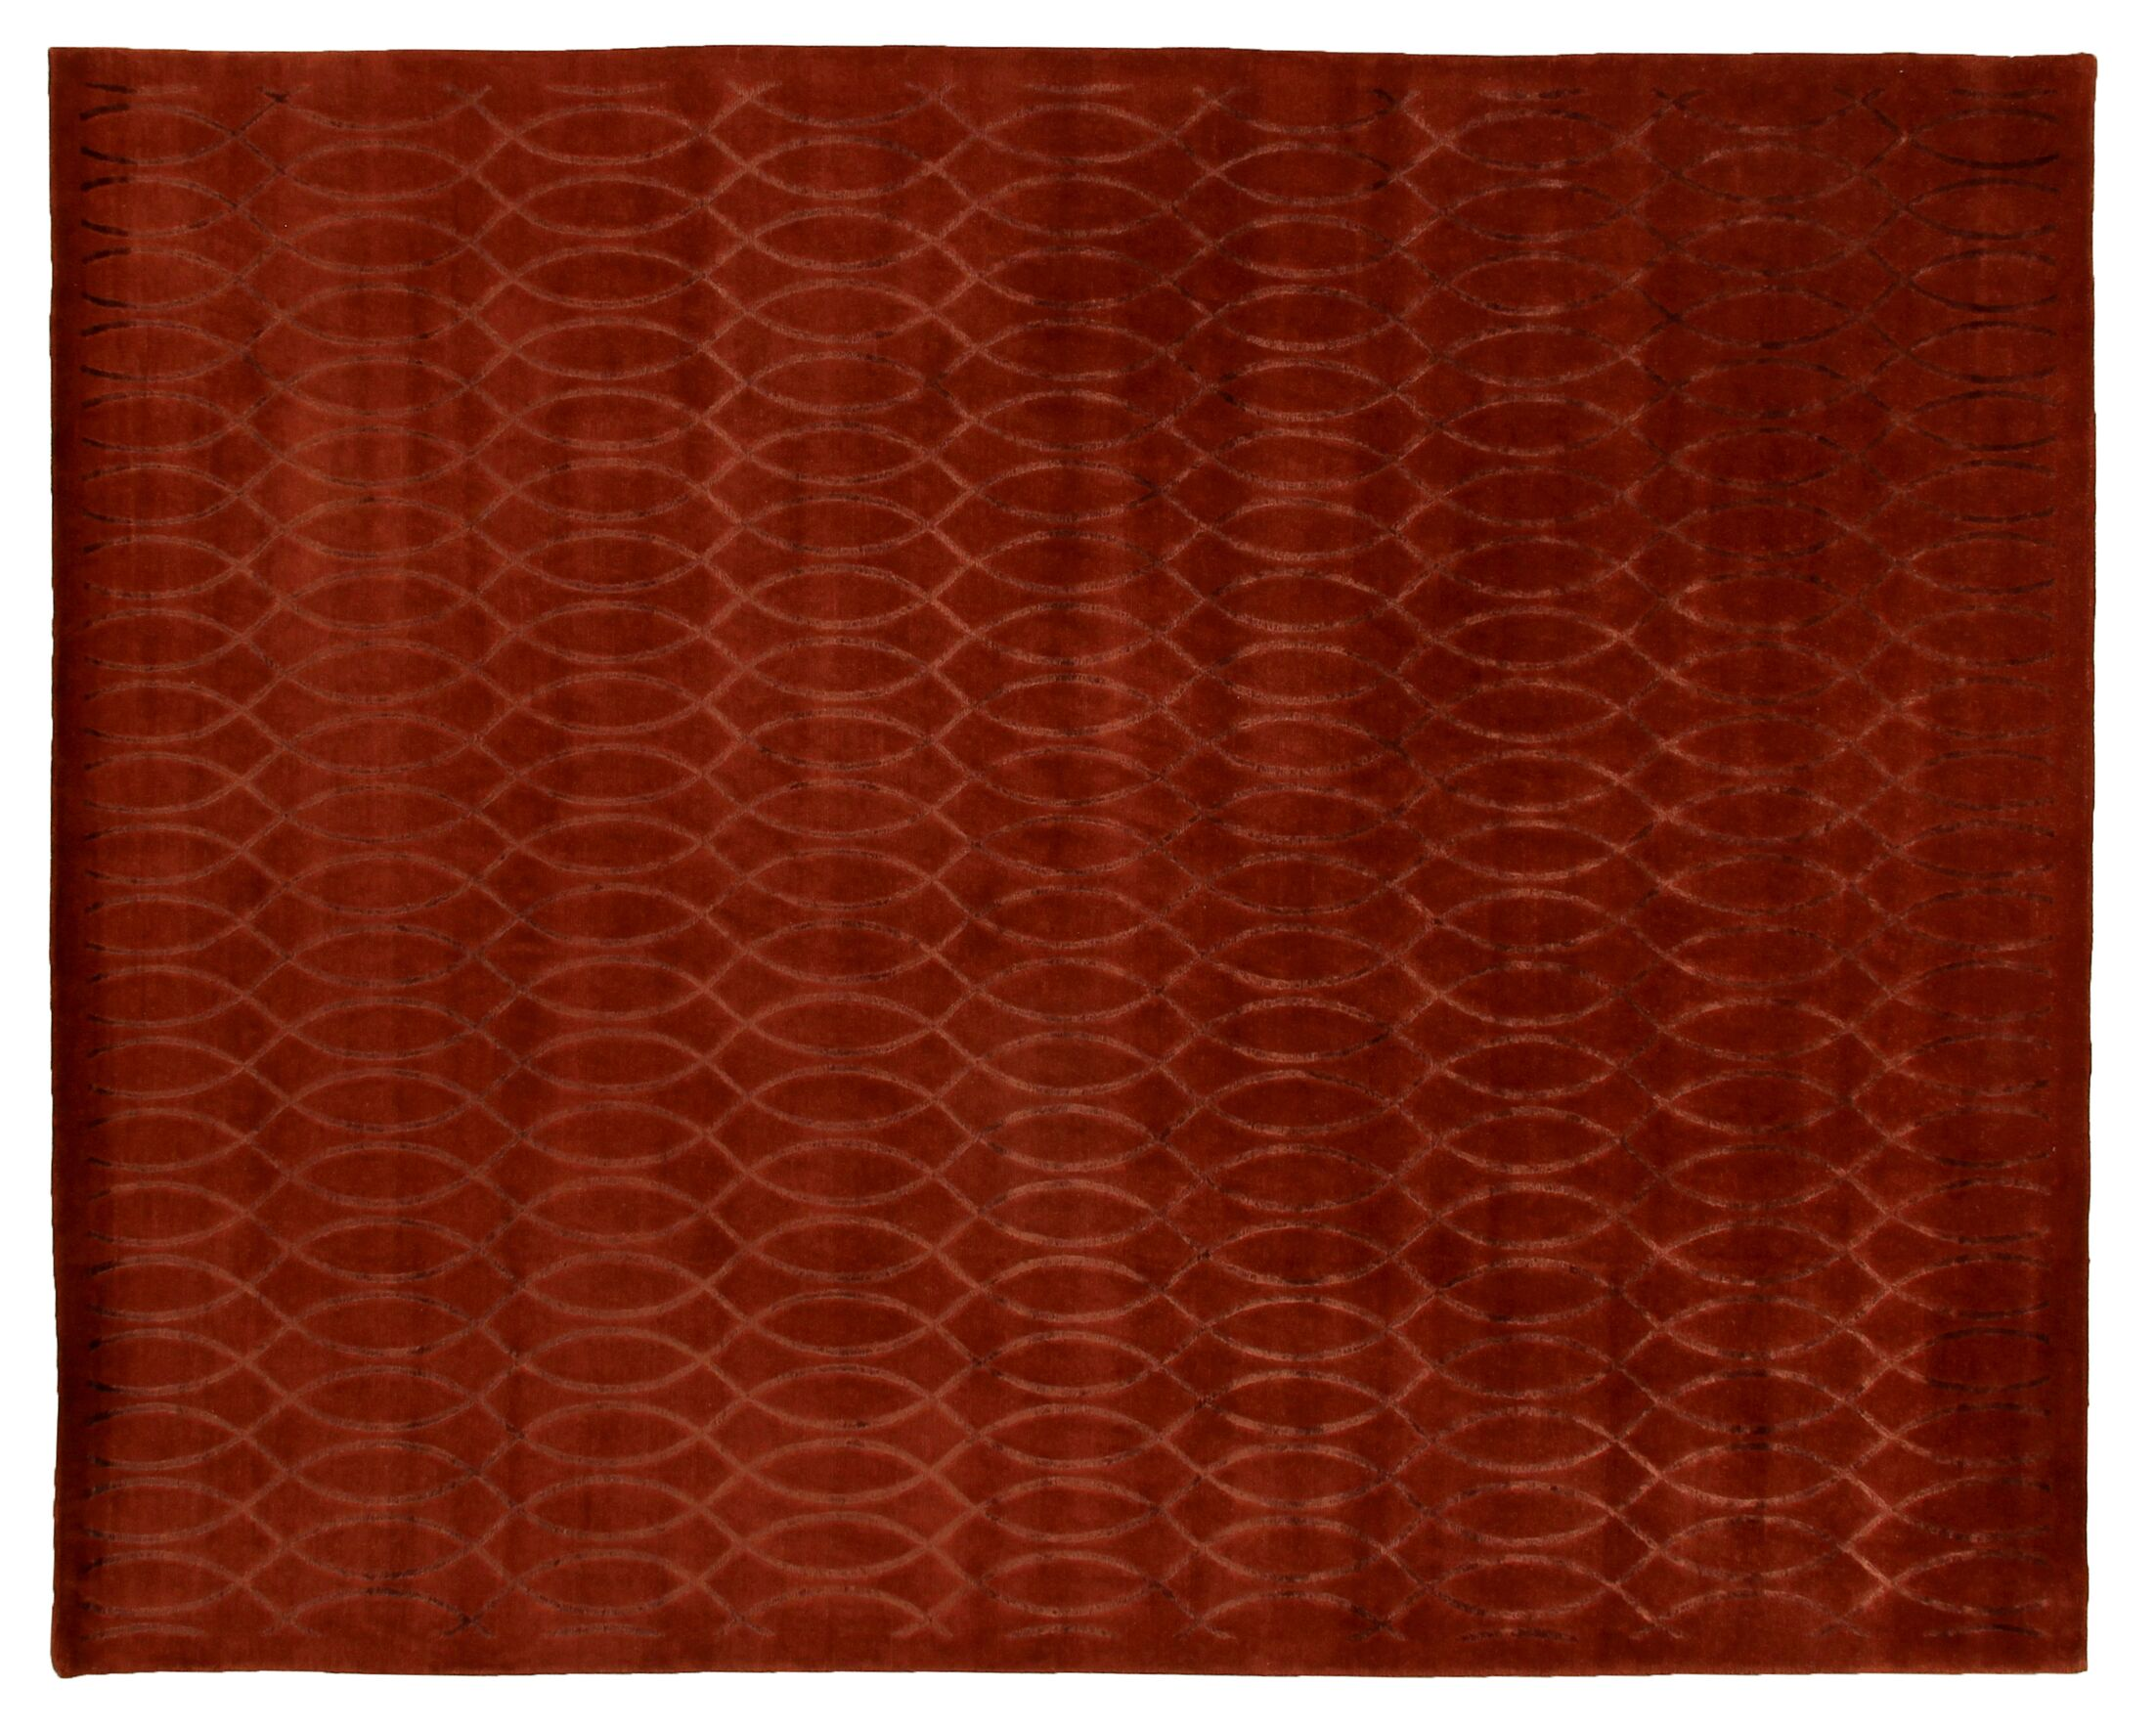 Super Tibetan Hand Knotted Ruby/Red Area Rug Rug Size: Rectangle 12' x 15'